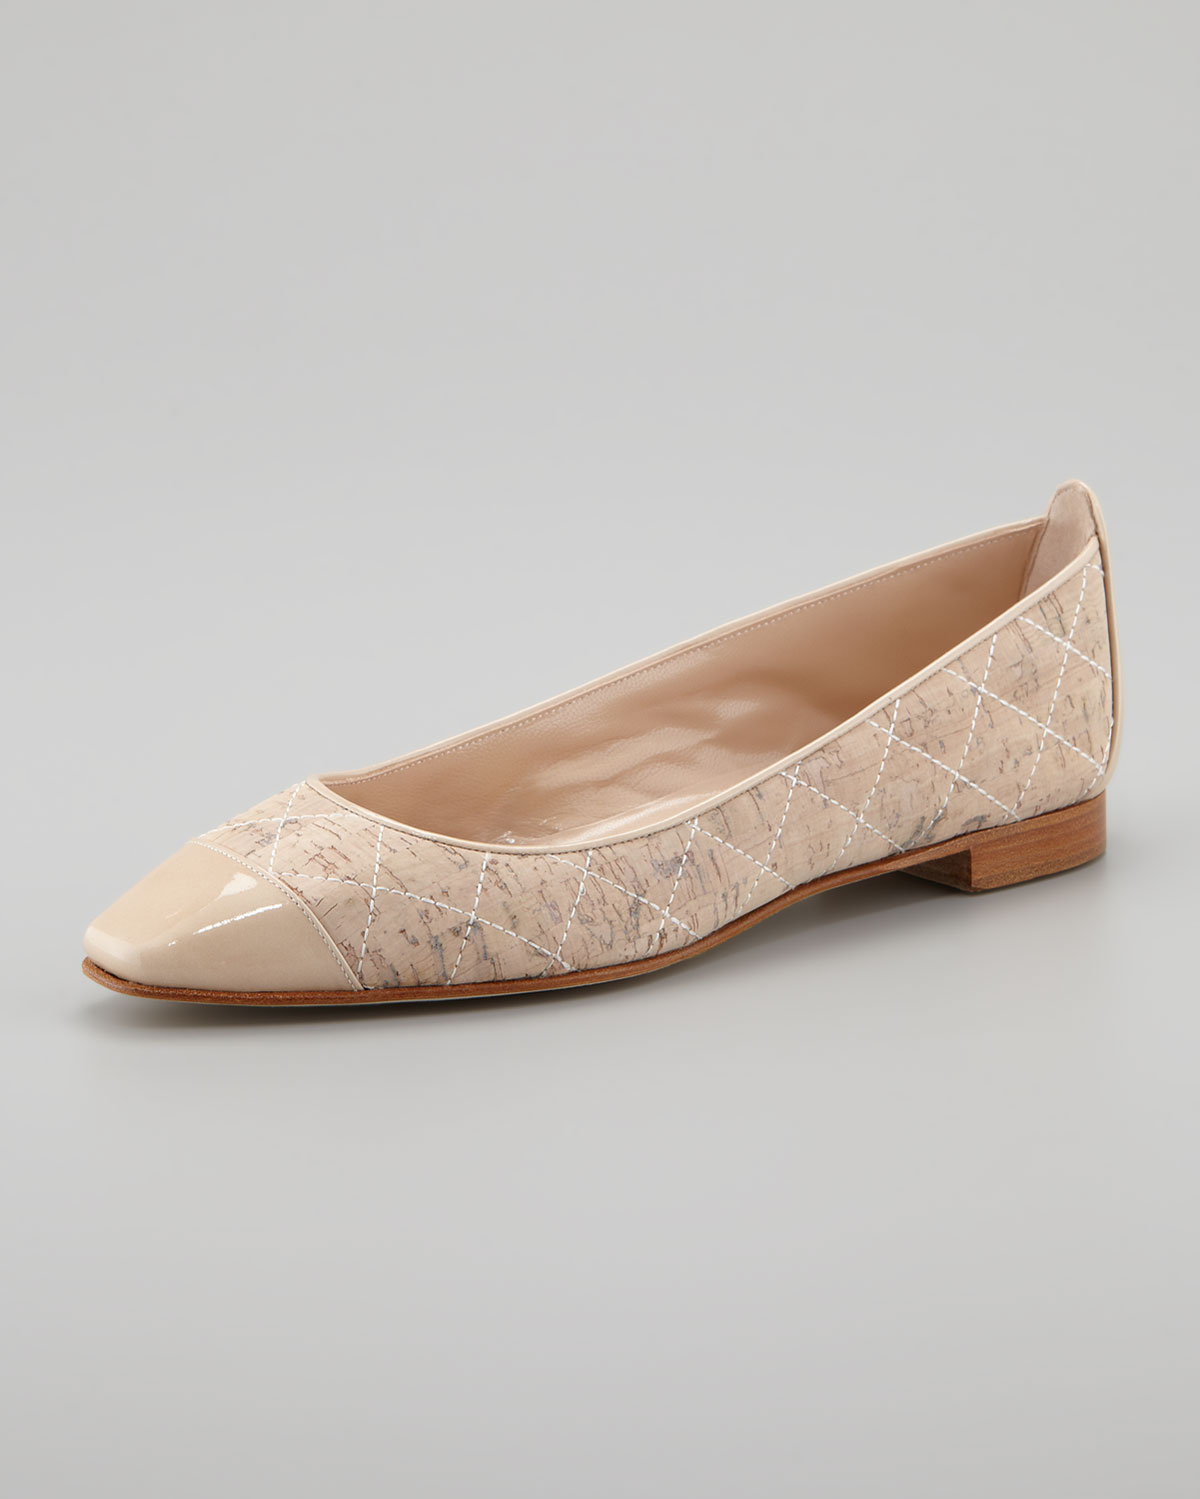 free shipping Manchester Manolo Blahnik Cork Cap-Toe Flats low cost sale online with mastercard cheap price JPGwv